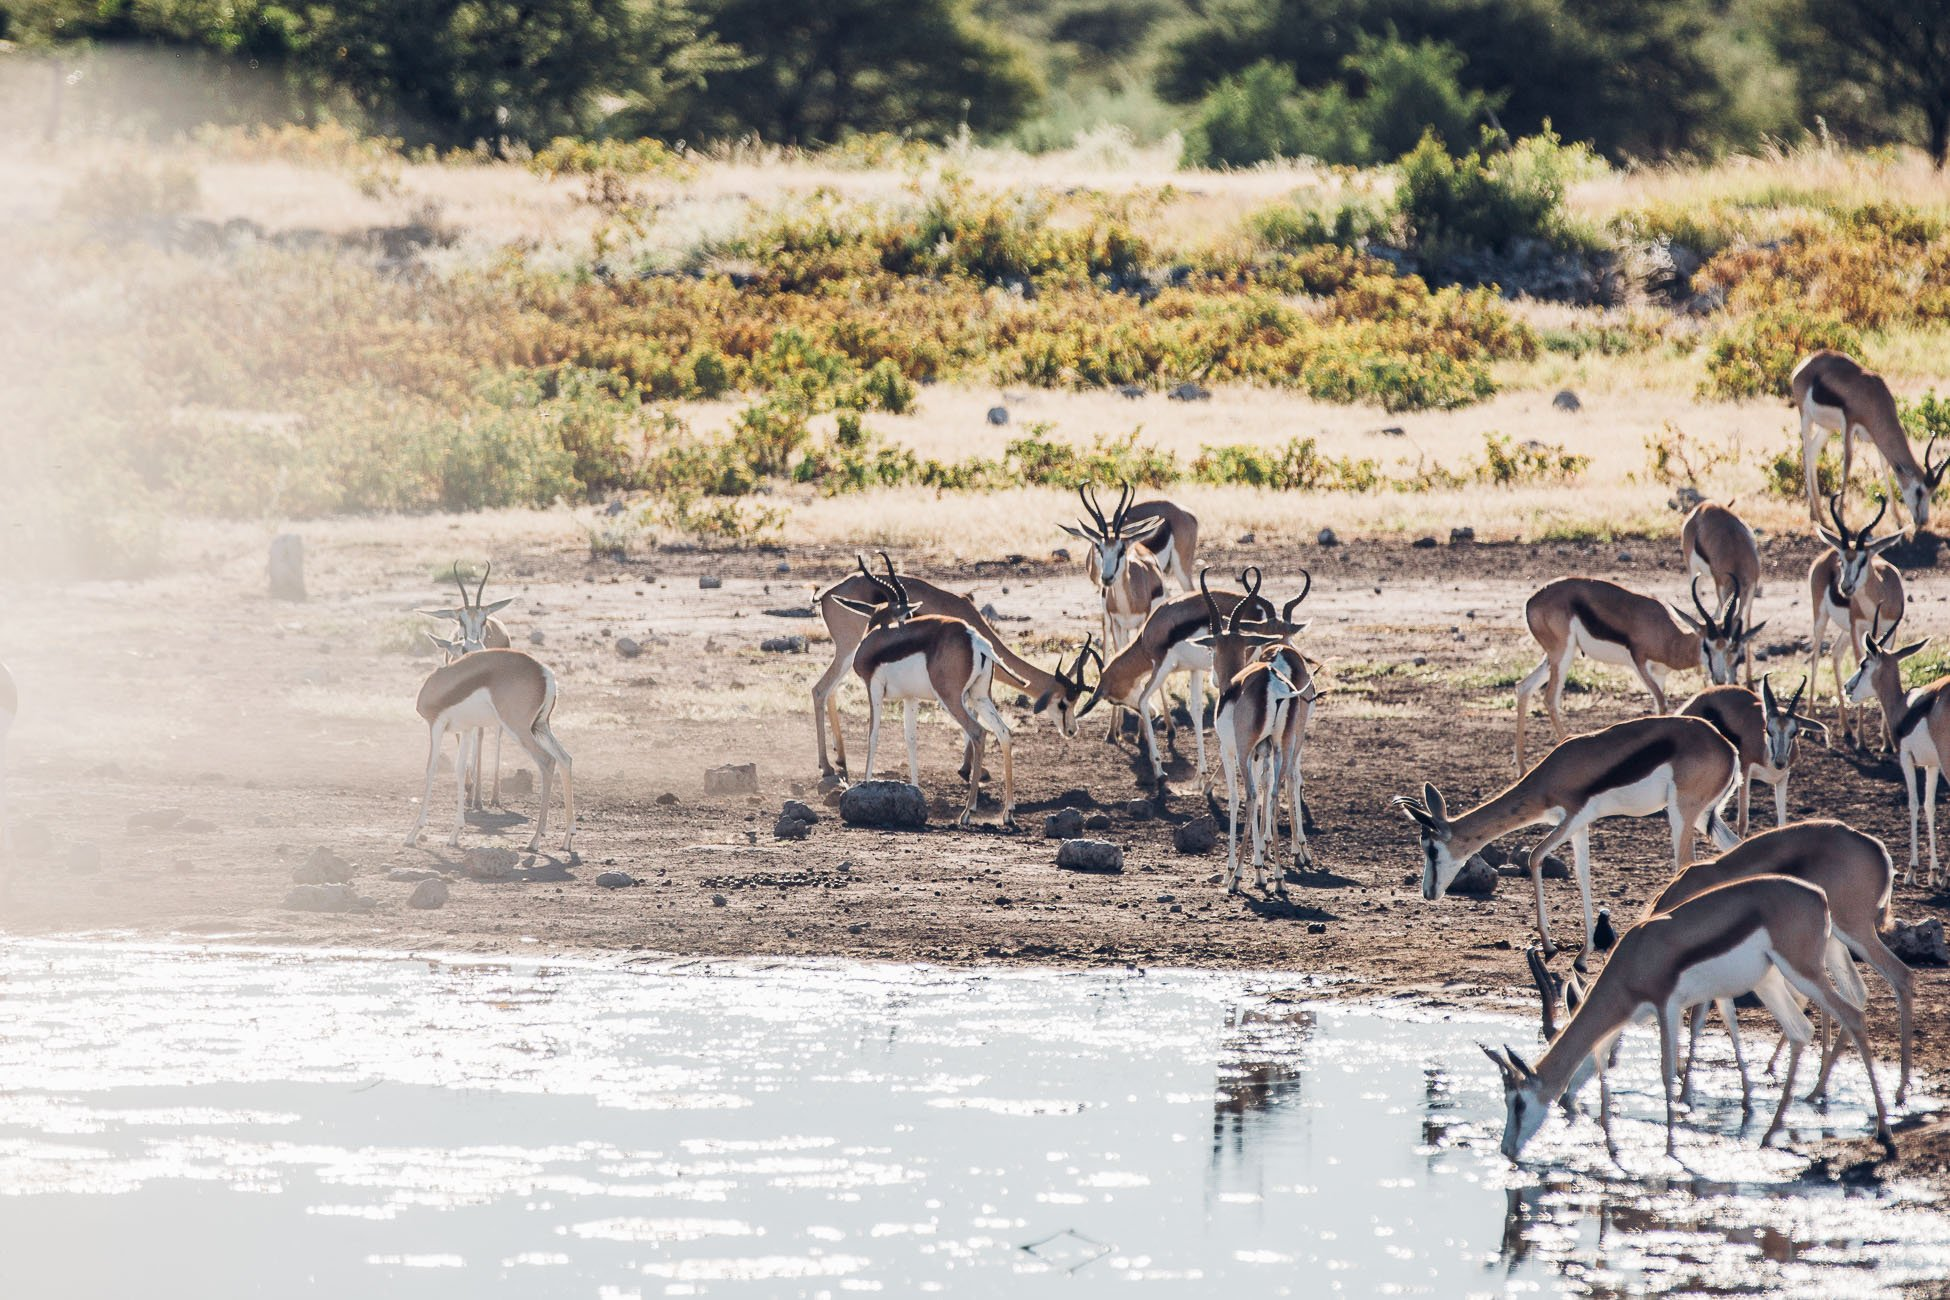 Antelopes at Etosha National Park